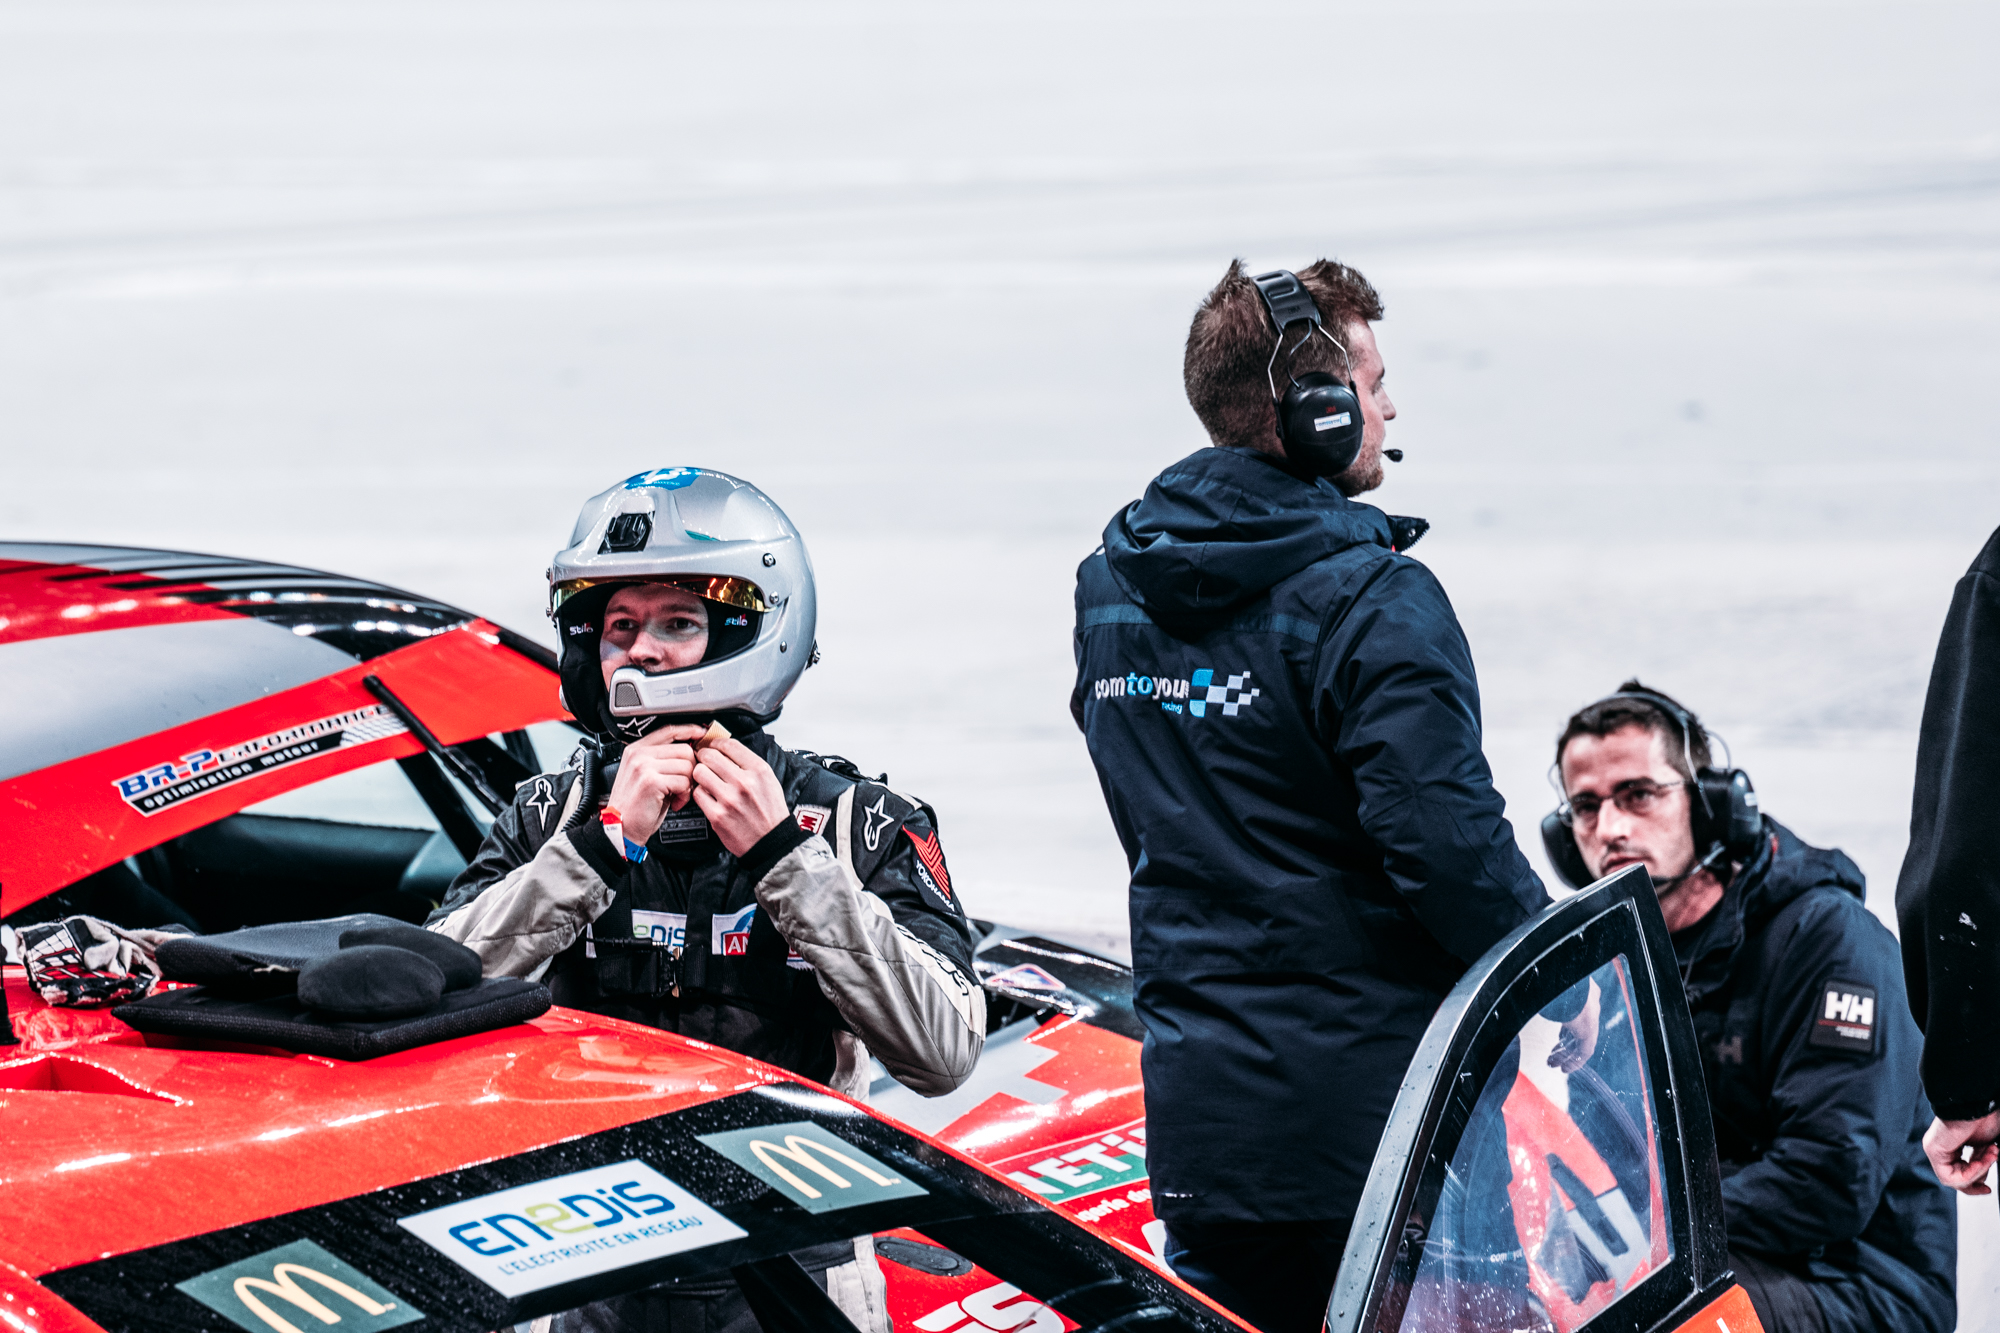 Last year you raced a petrol Andros car, now you're racing an EV. They go just as fast when you look at the timetable, but I guess they are totally different when it comes to driving?